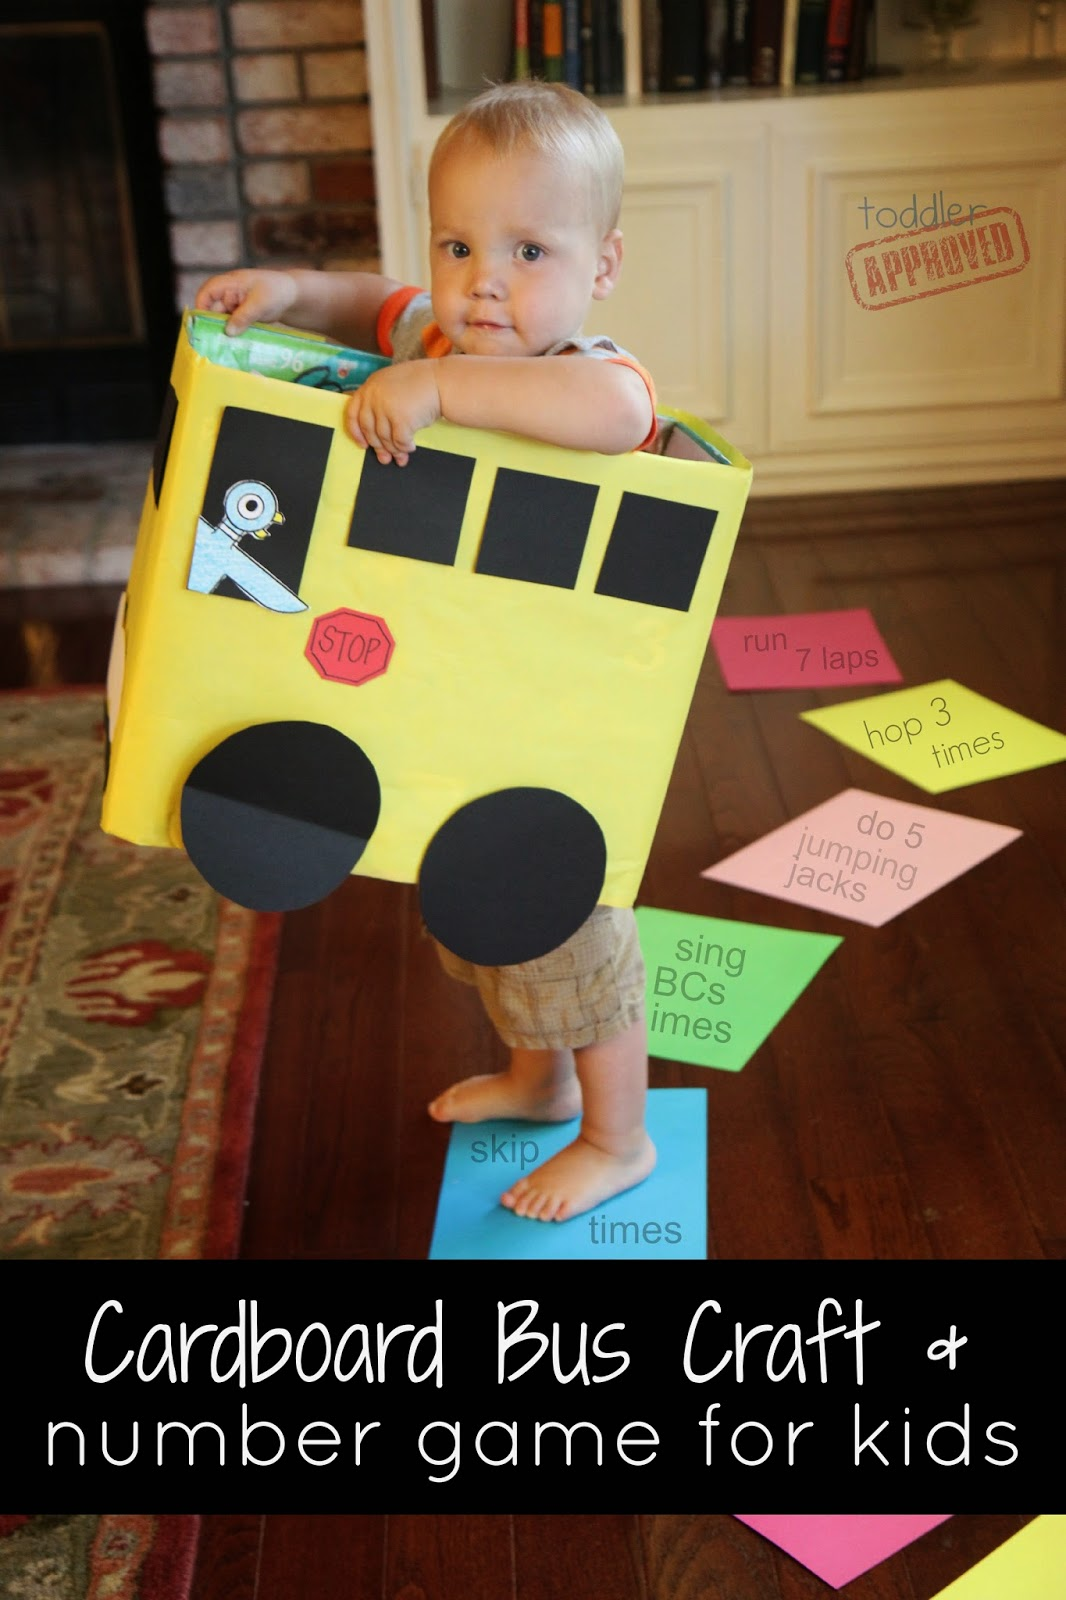 Cardboard Bus Craft inspired by Mo Willems